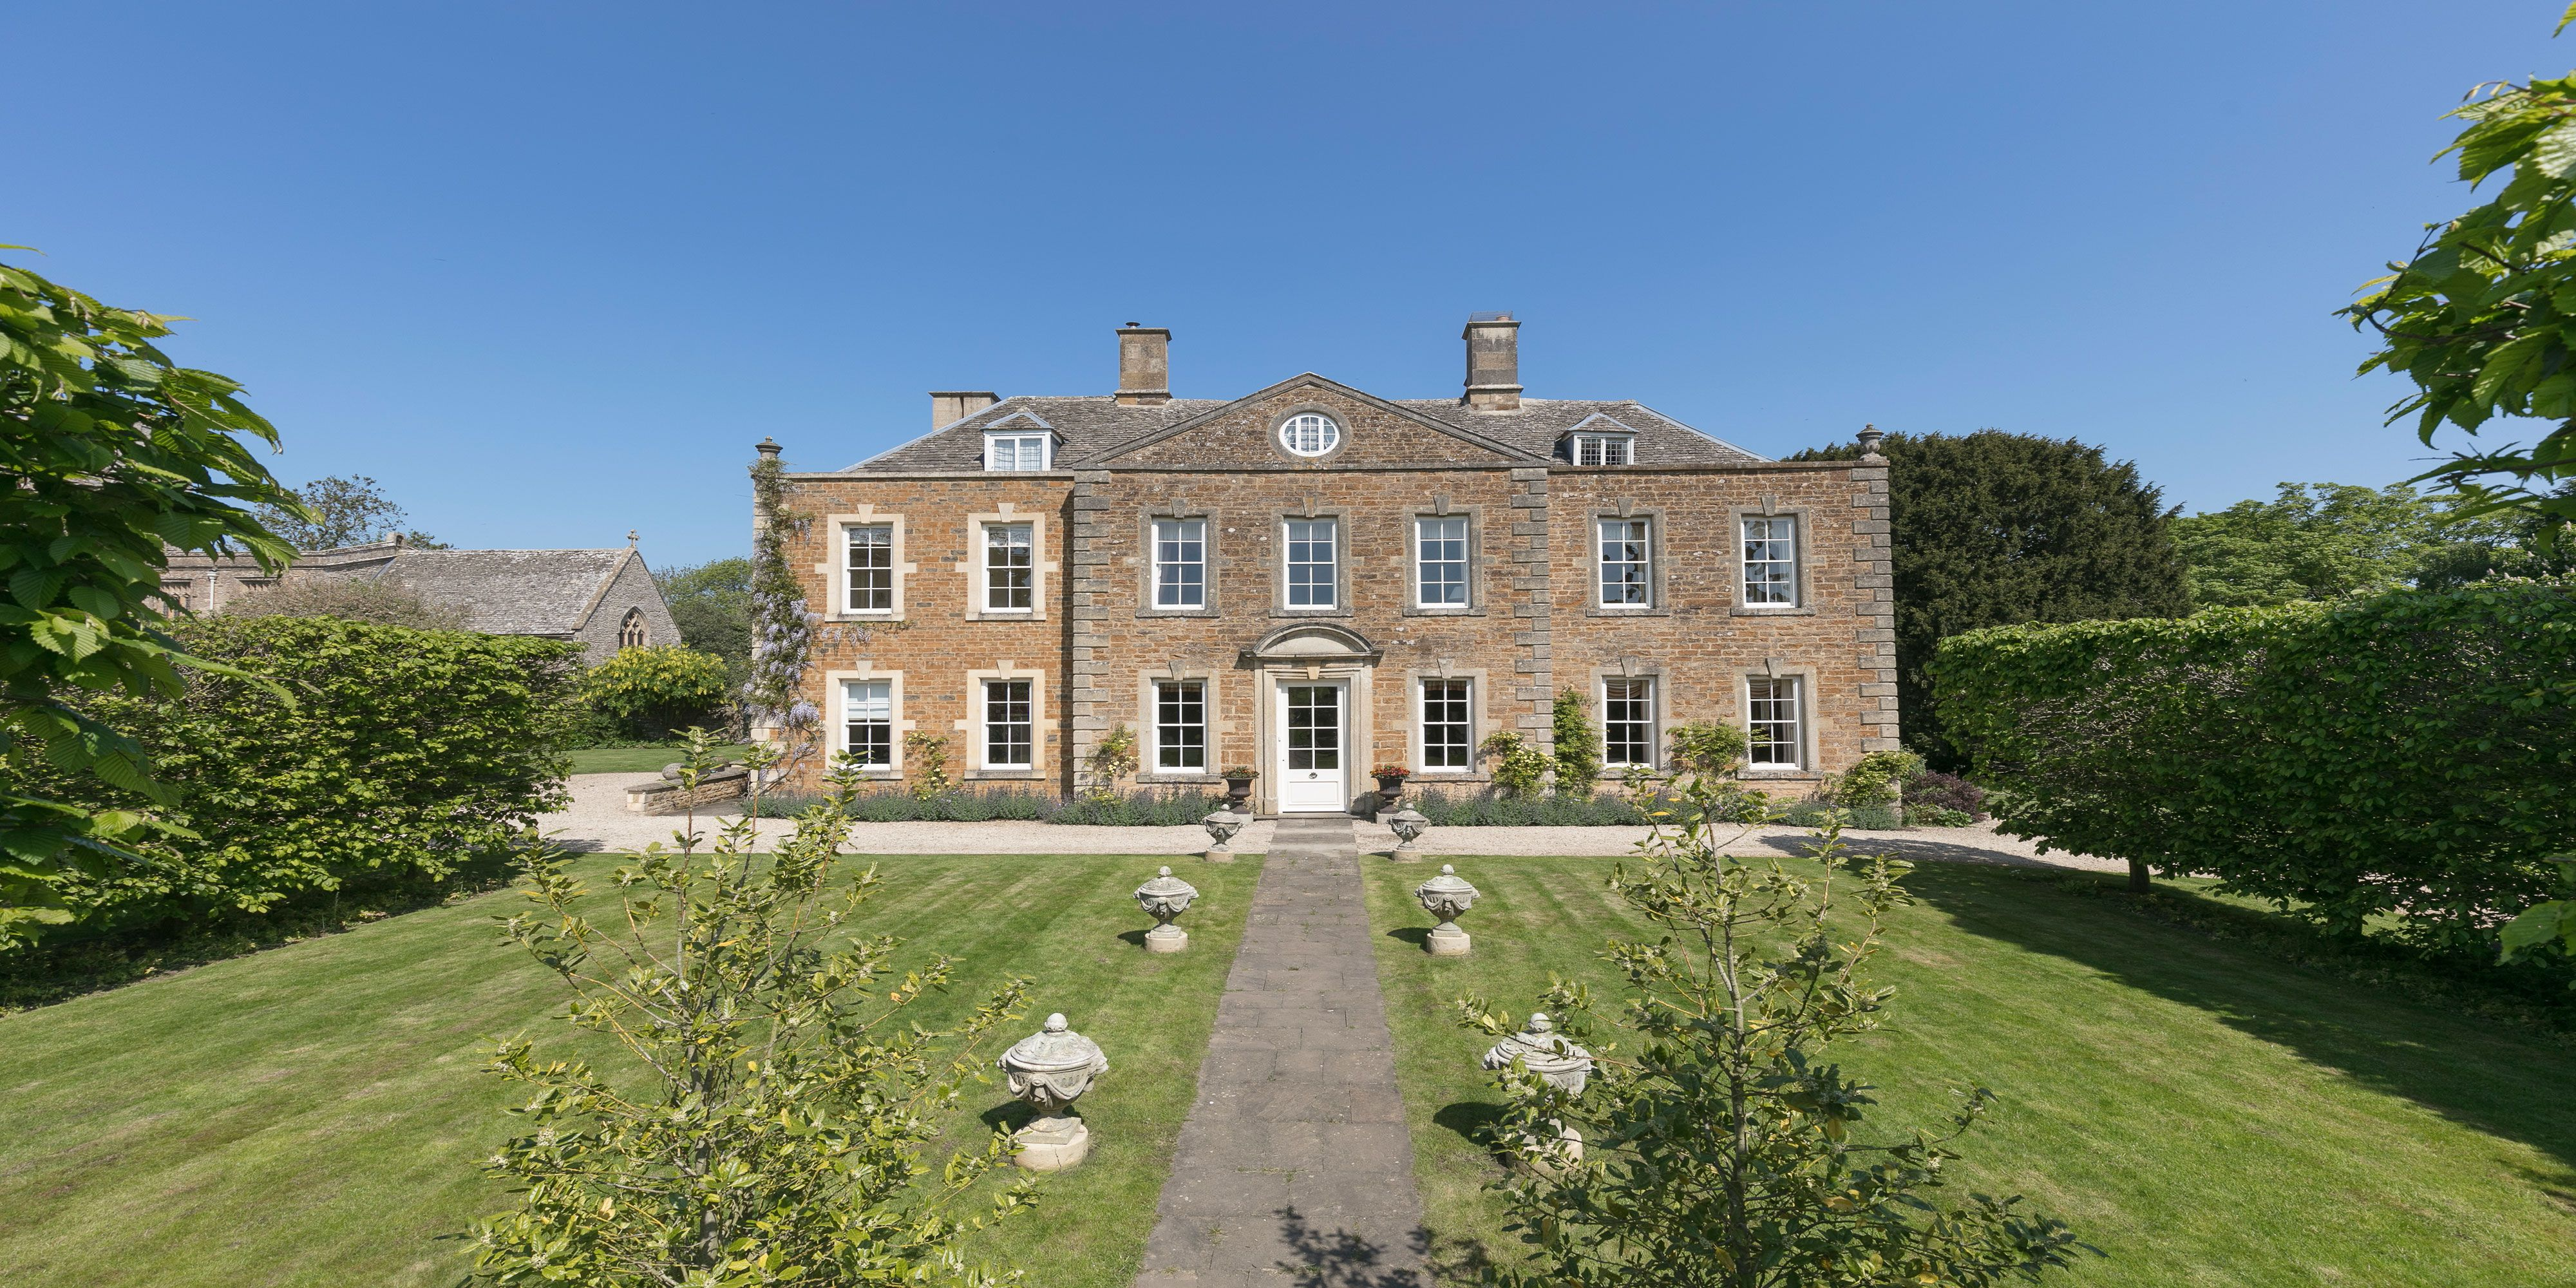 A beautiful Grade II-listed former rectory in the Warwickshire countryside